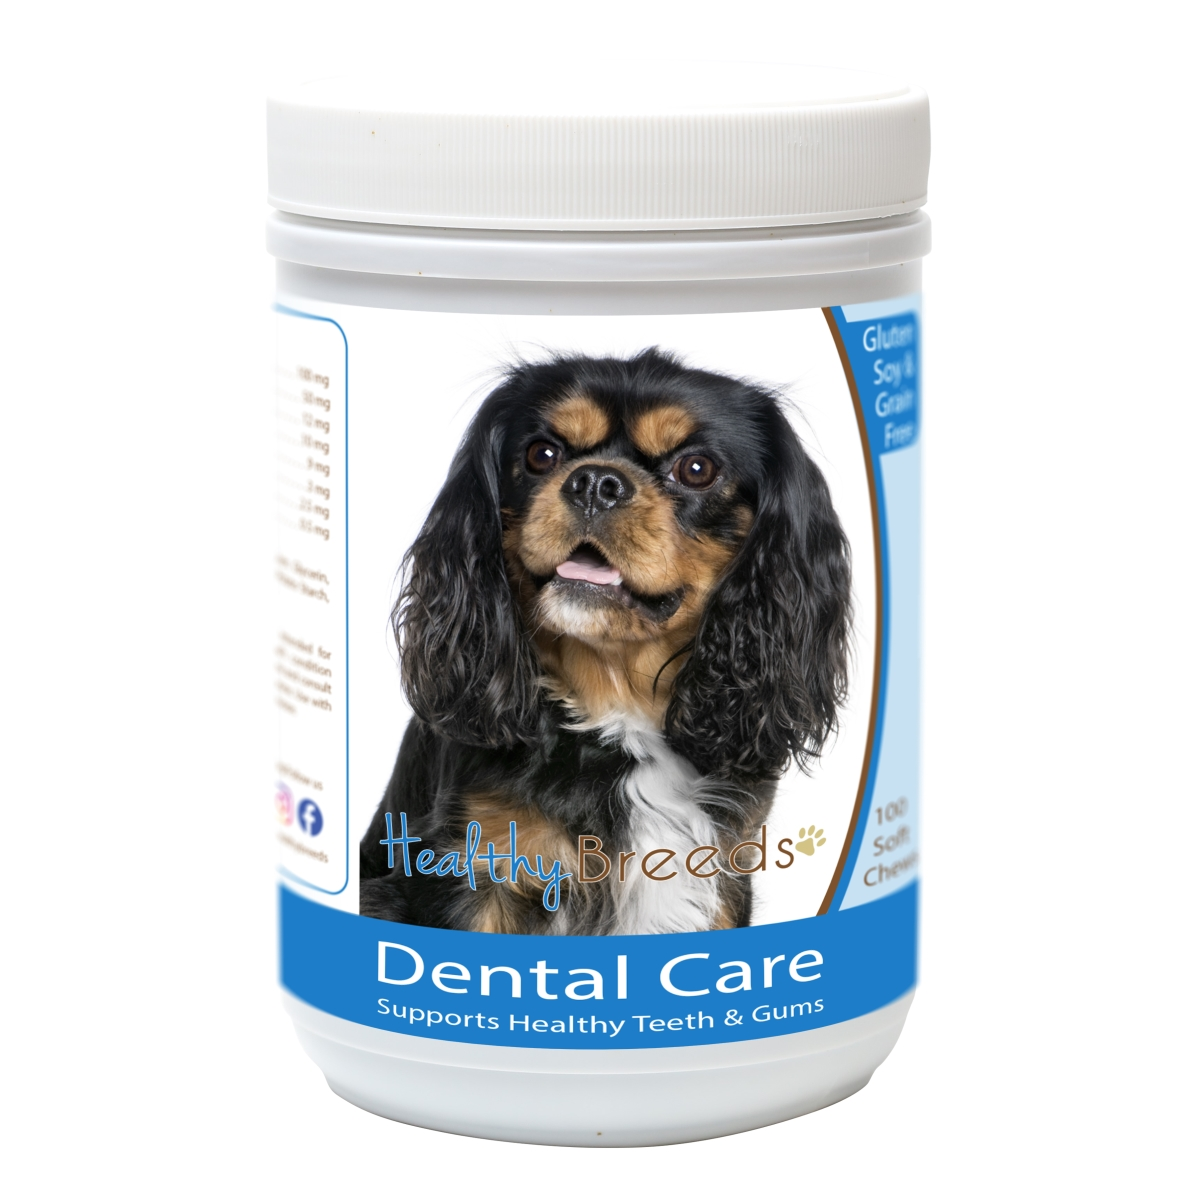 Healthy Breeds 840235163039 Cavalier King Charles Spaniel Breath Care Soft Chews for Dogs - 60 Count